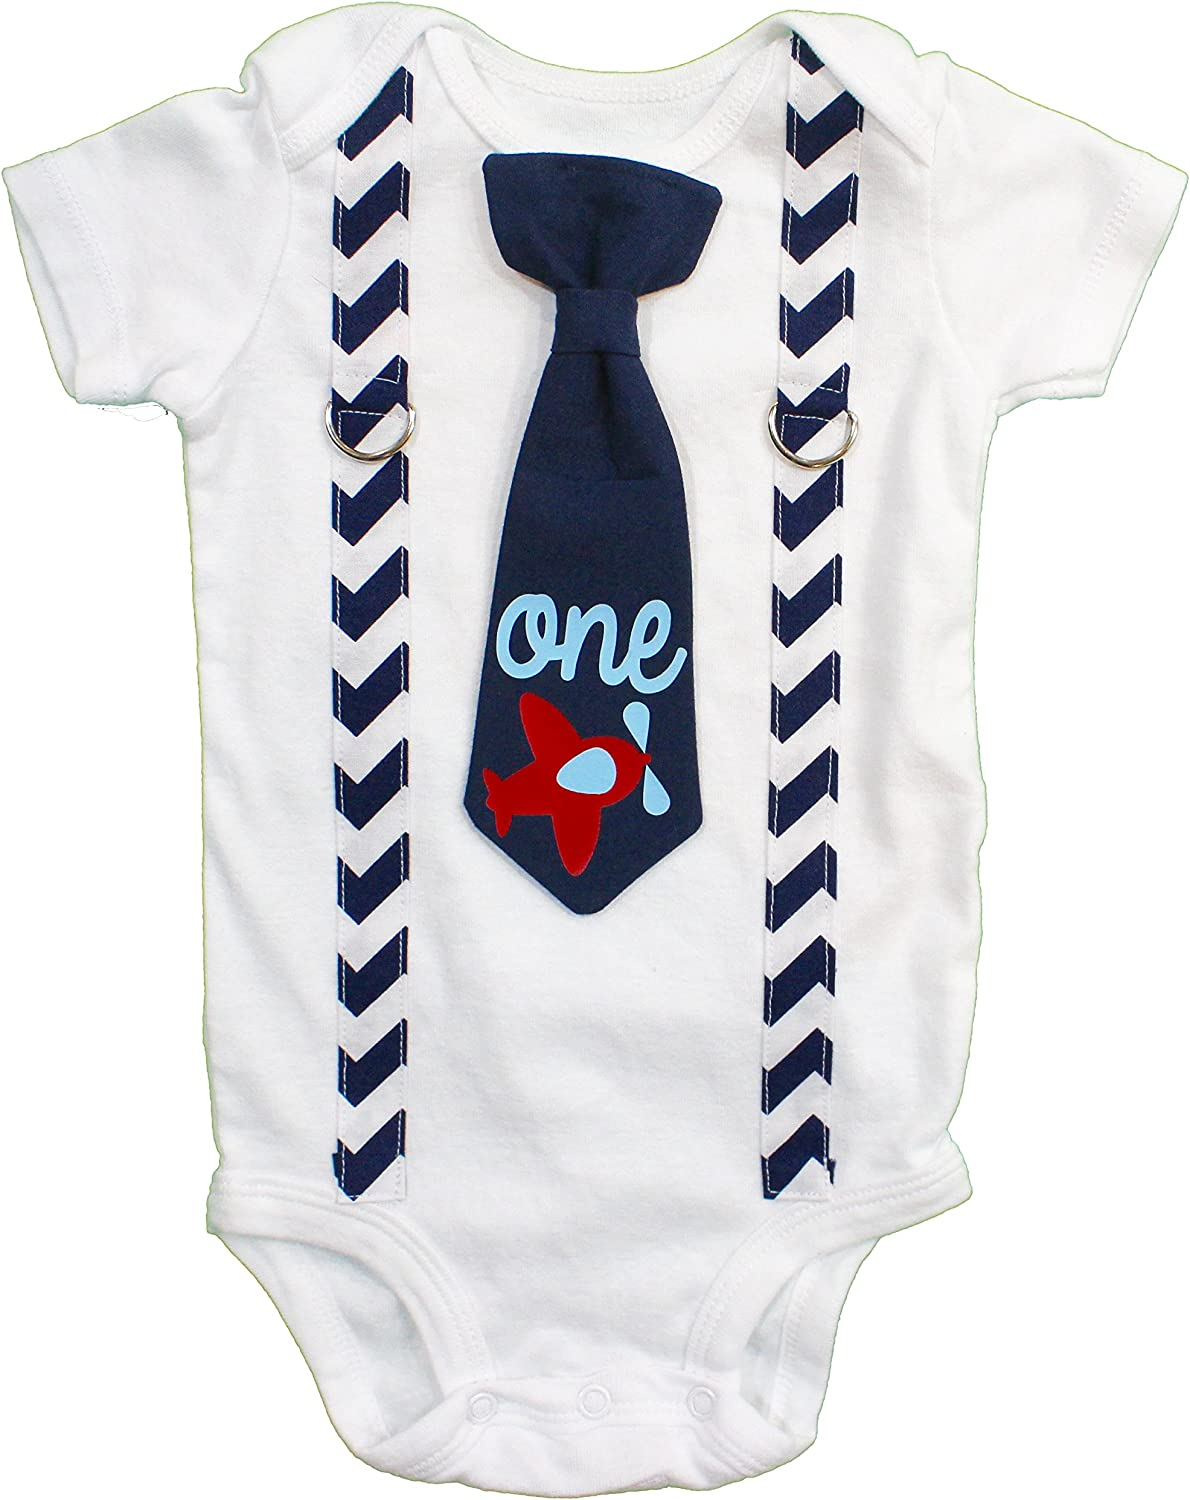 Cuddle Sleep Dream Baby Boy Super popular specialty store 1st Birthday Outfit Smash Cake Bodys New popularity